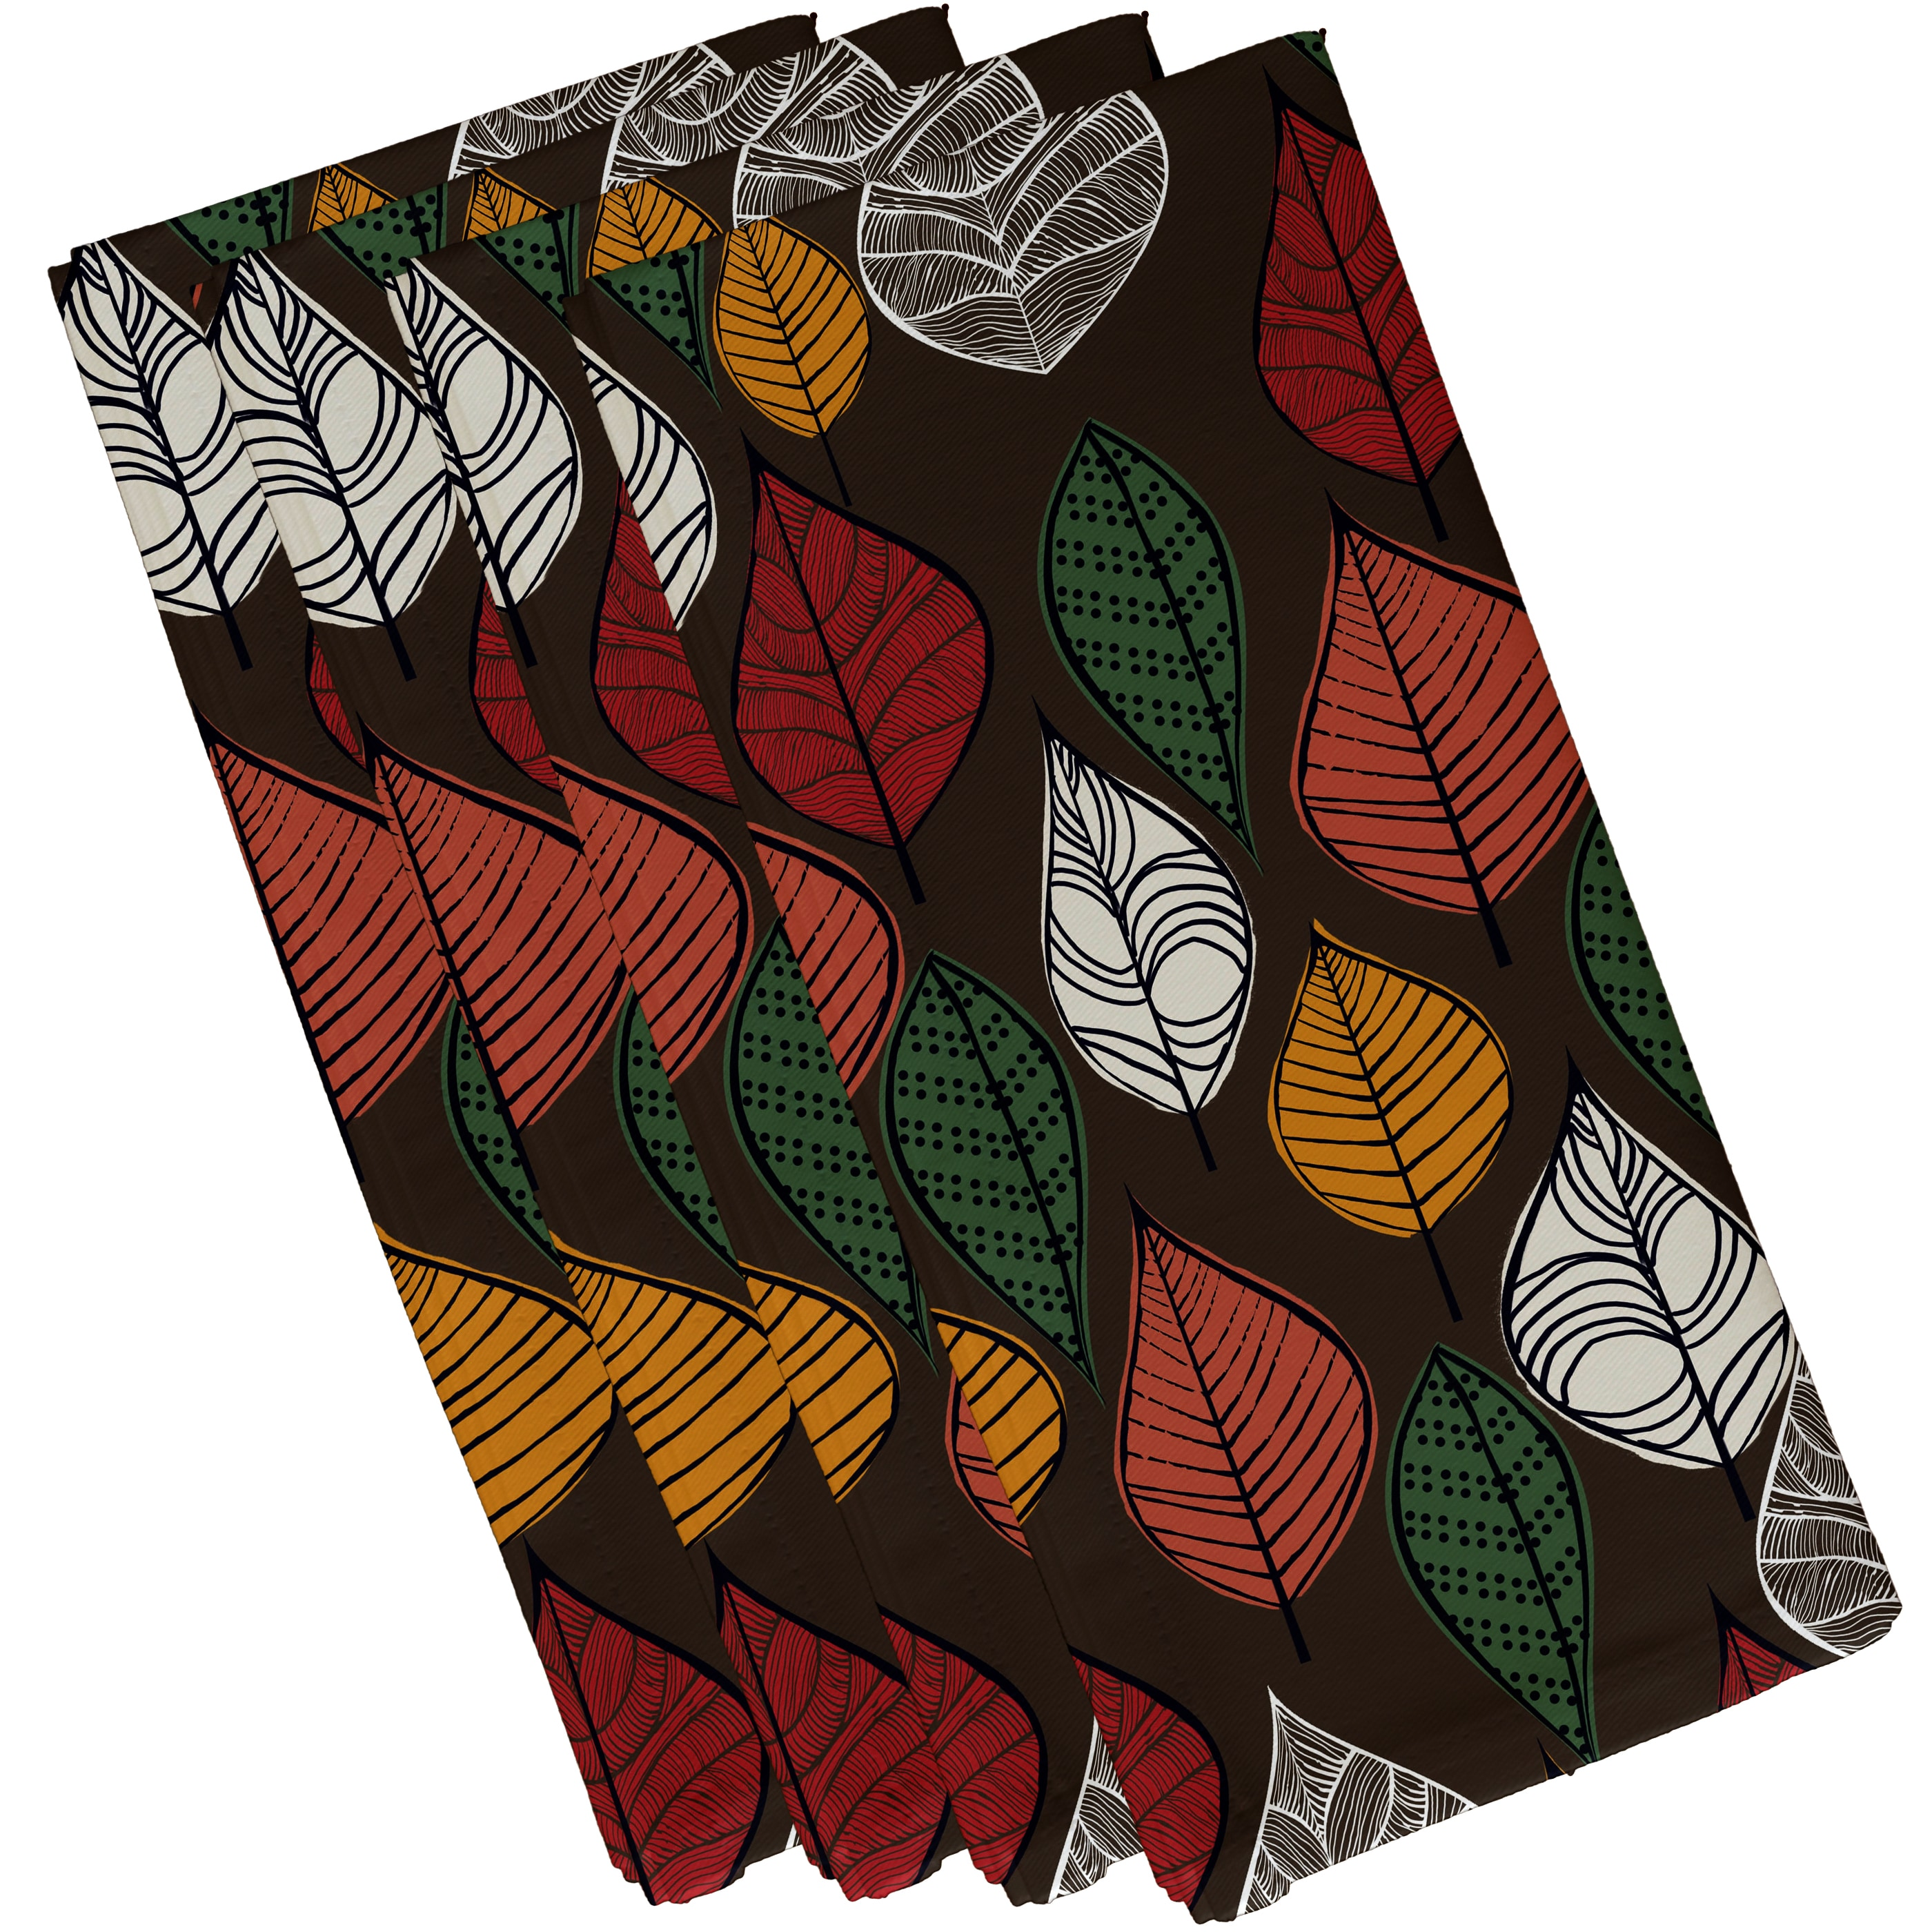 E By Design 19 x 19-inch, Autumn Leaves, Floral Print Nap...